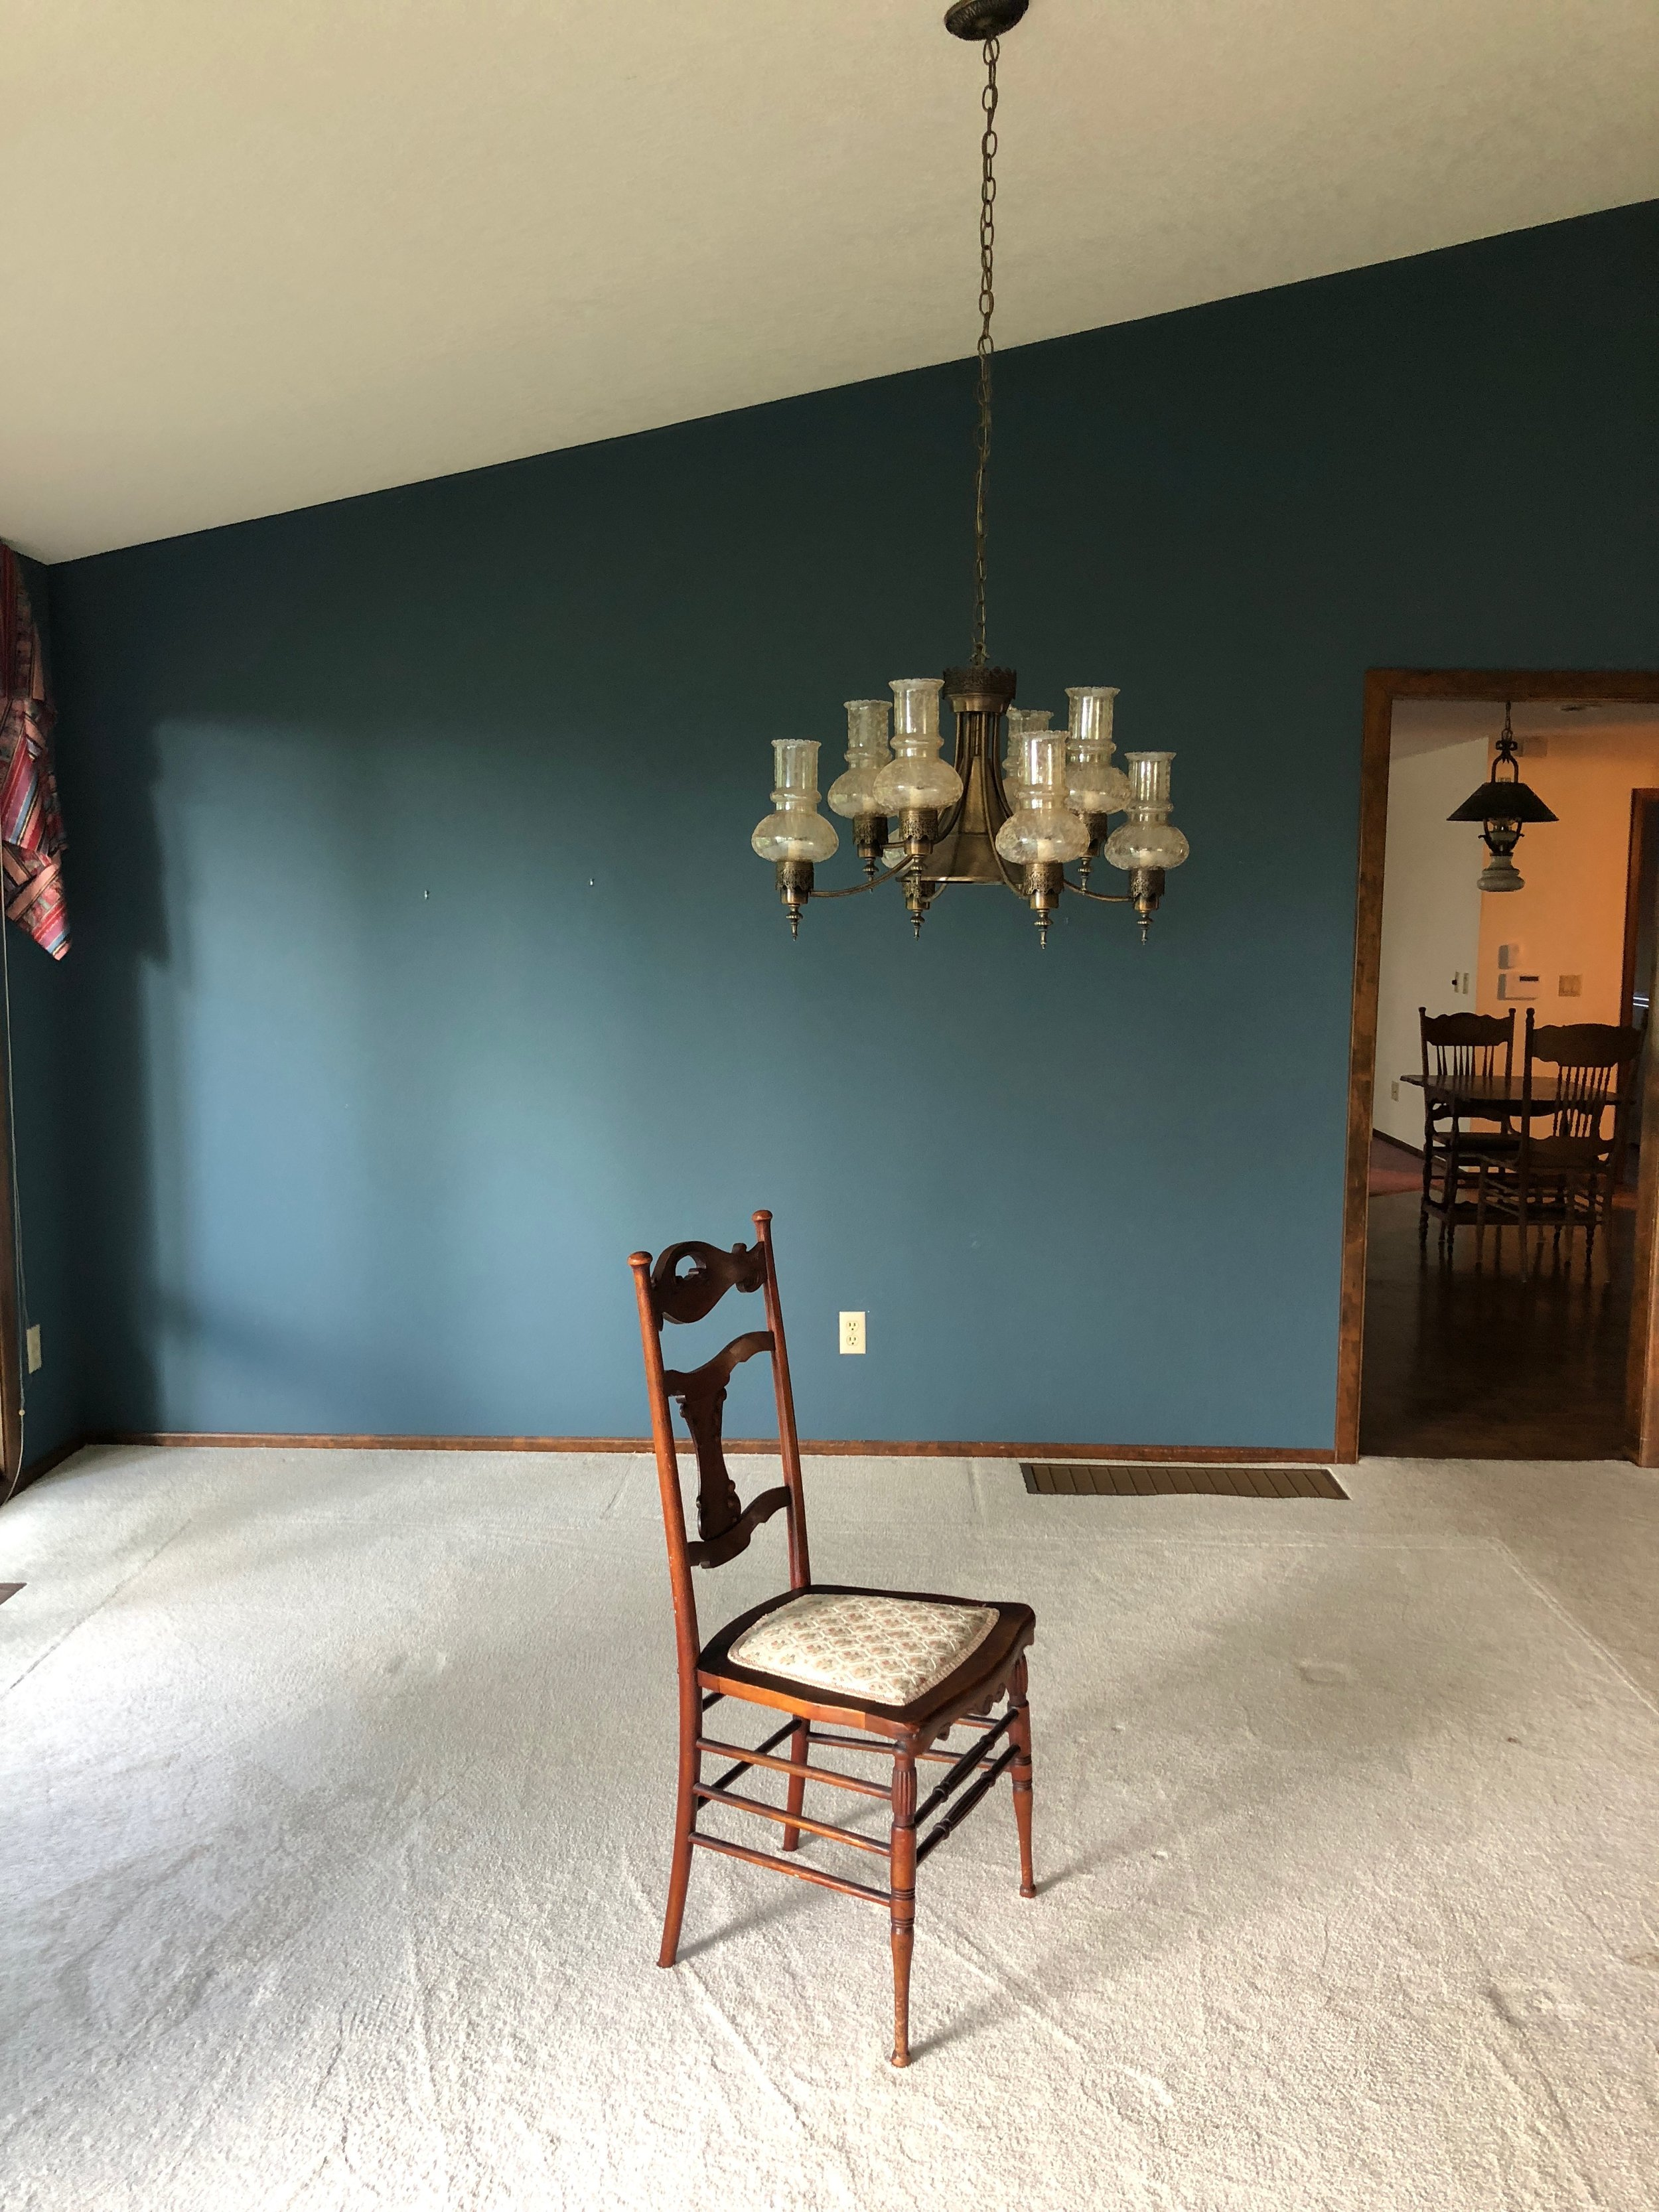 BEFORE // blue walls, carpet, outdated lighting